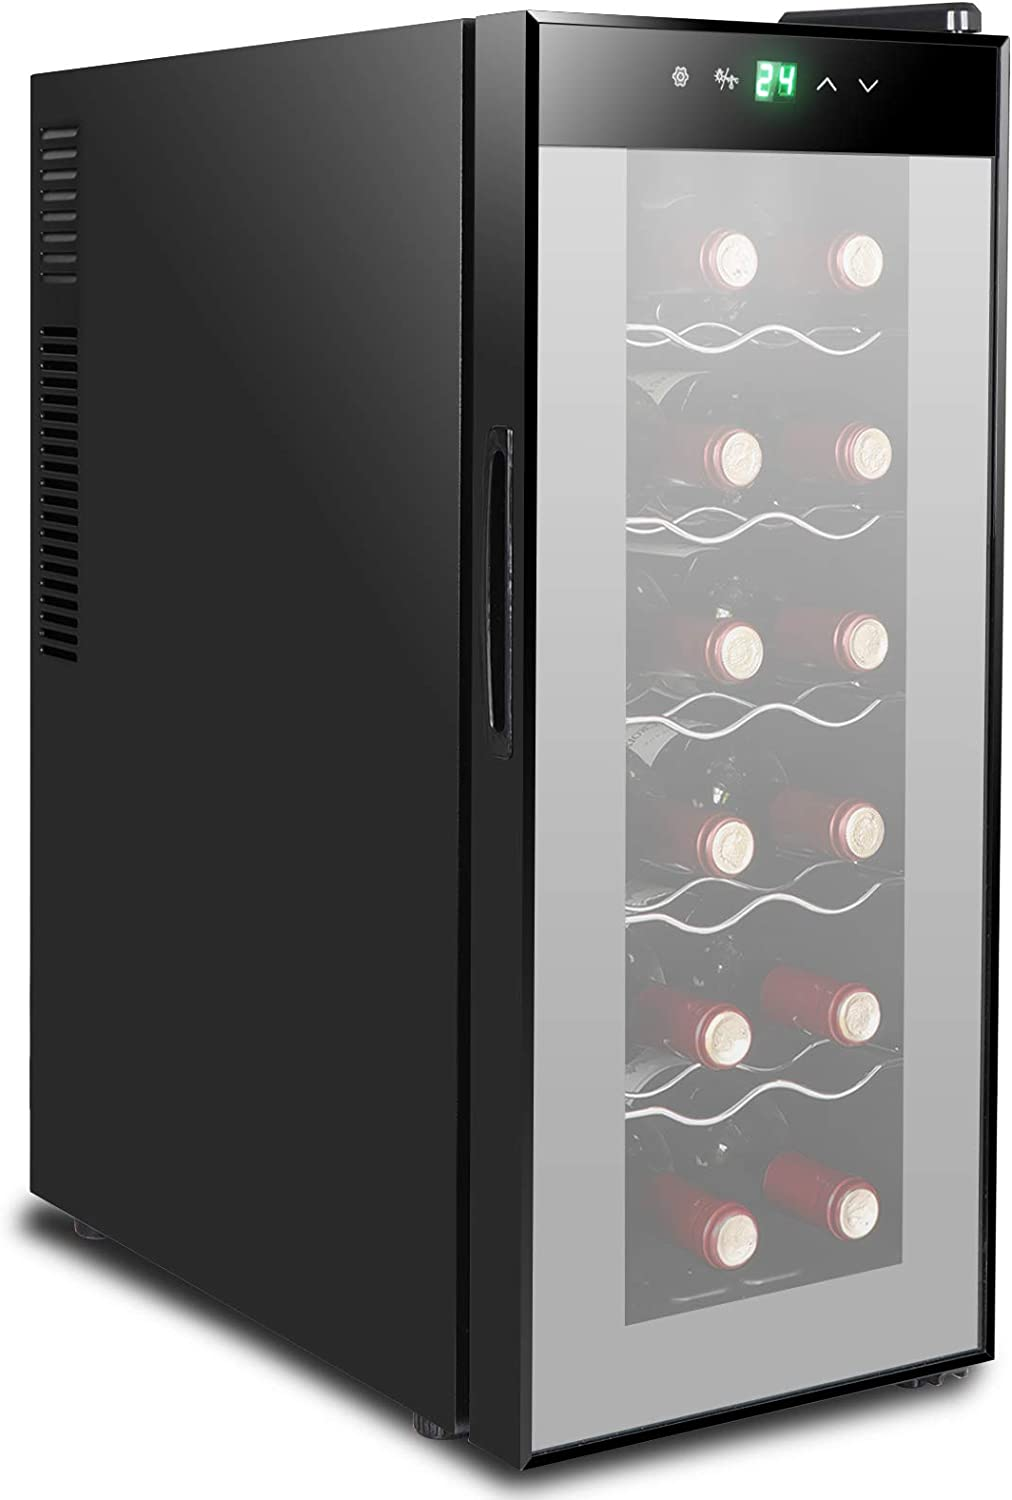 ZENY 12 Bottle Red White Champagne Chiller, Thermoelectric Wine Cooler Refrigerator, Counter Top Wine Cooler, Quiet Operation Fridge, Touch Temperature Display